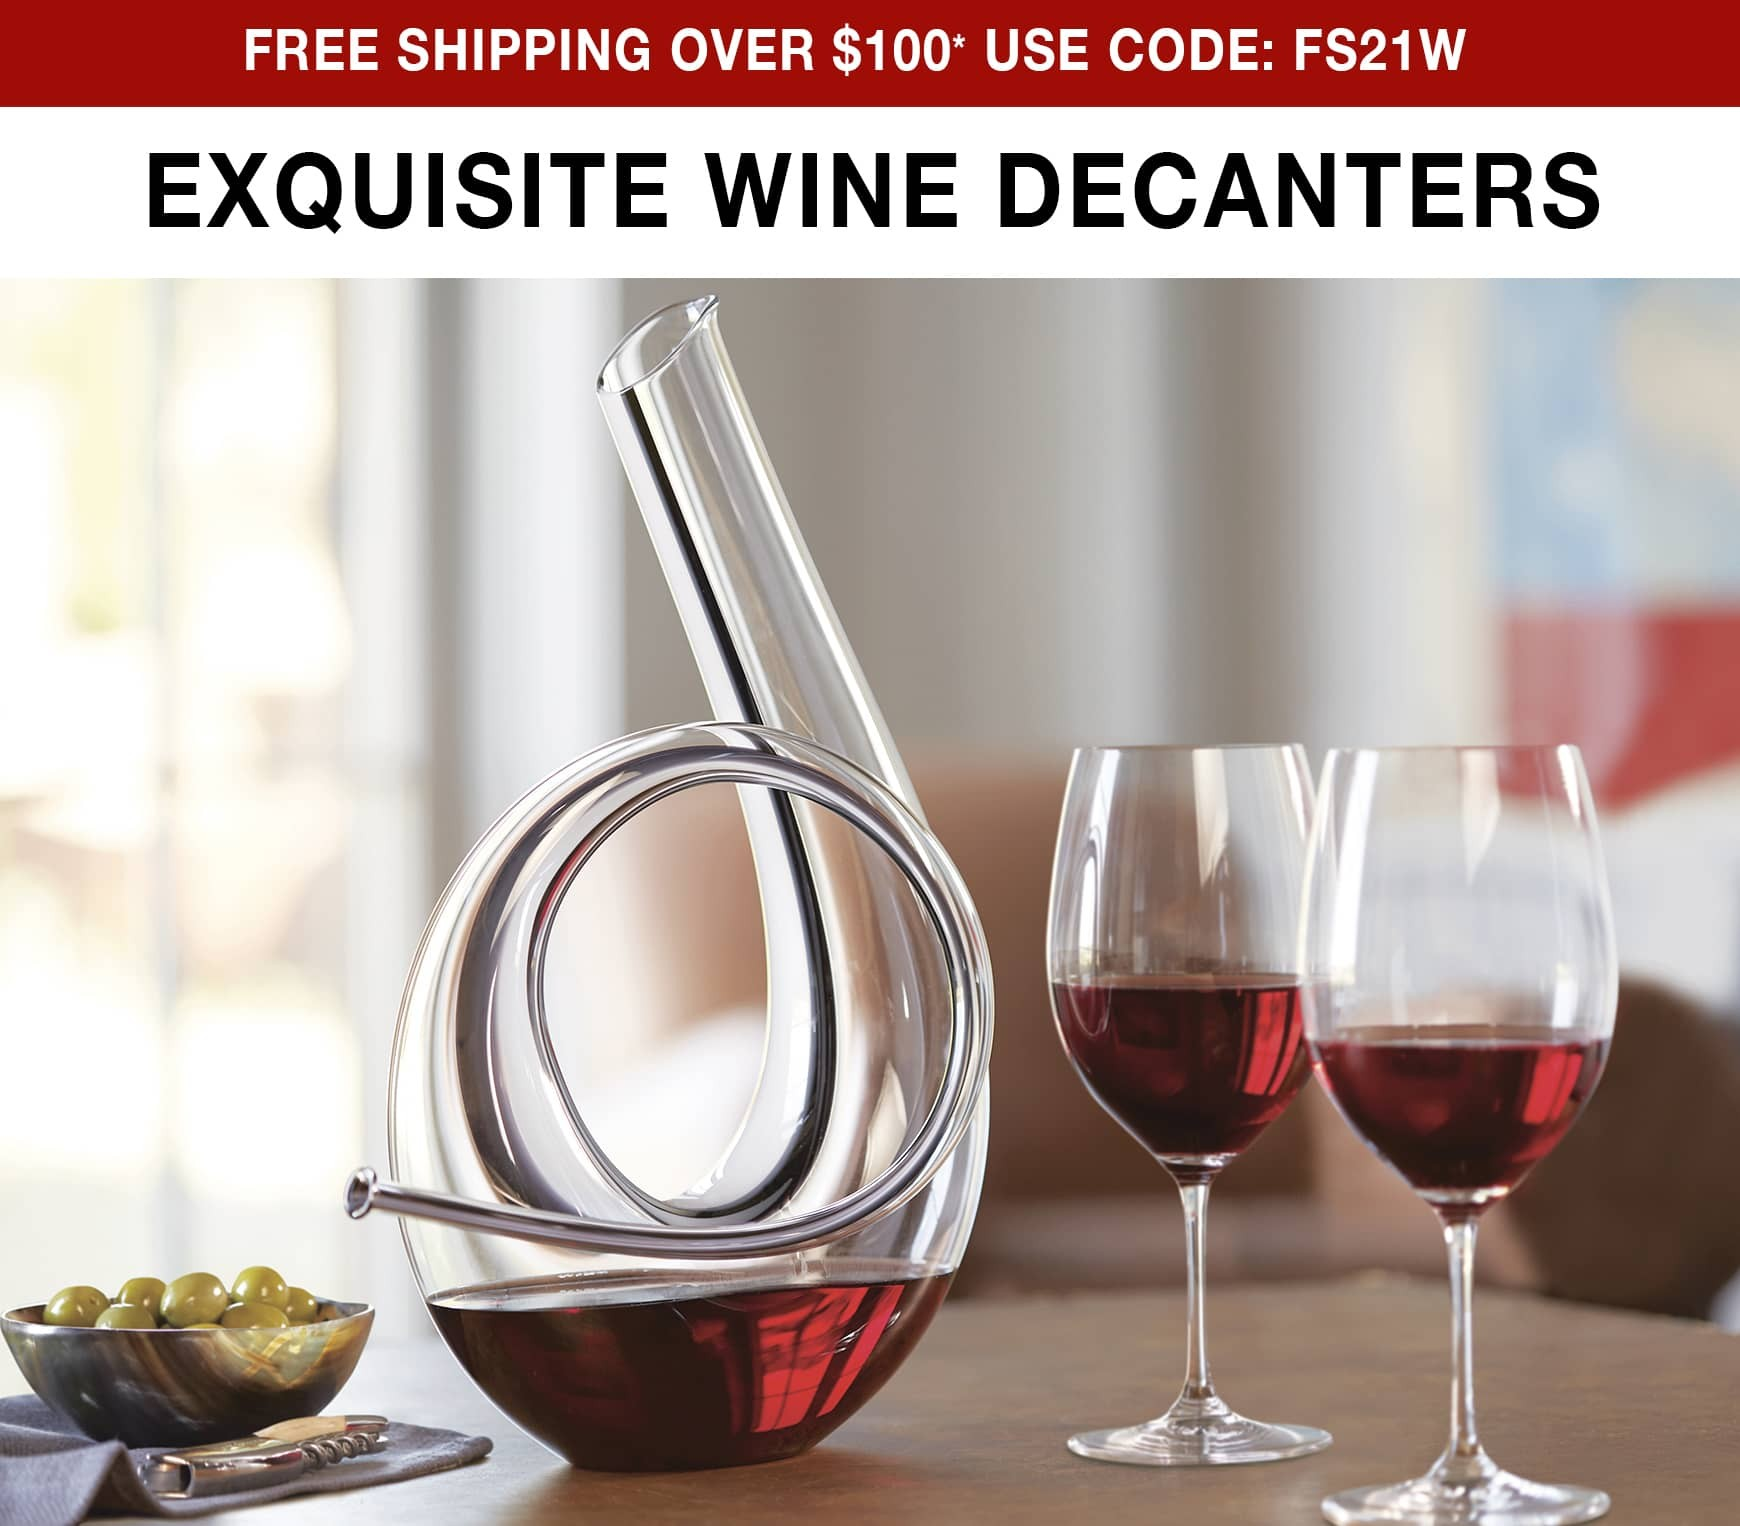 Exquisite Wine Decanters - Free ground shipping on orders over $100 use code FS21W